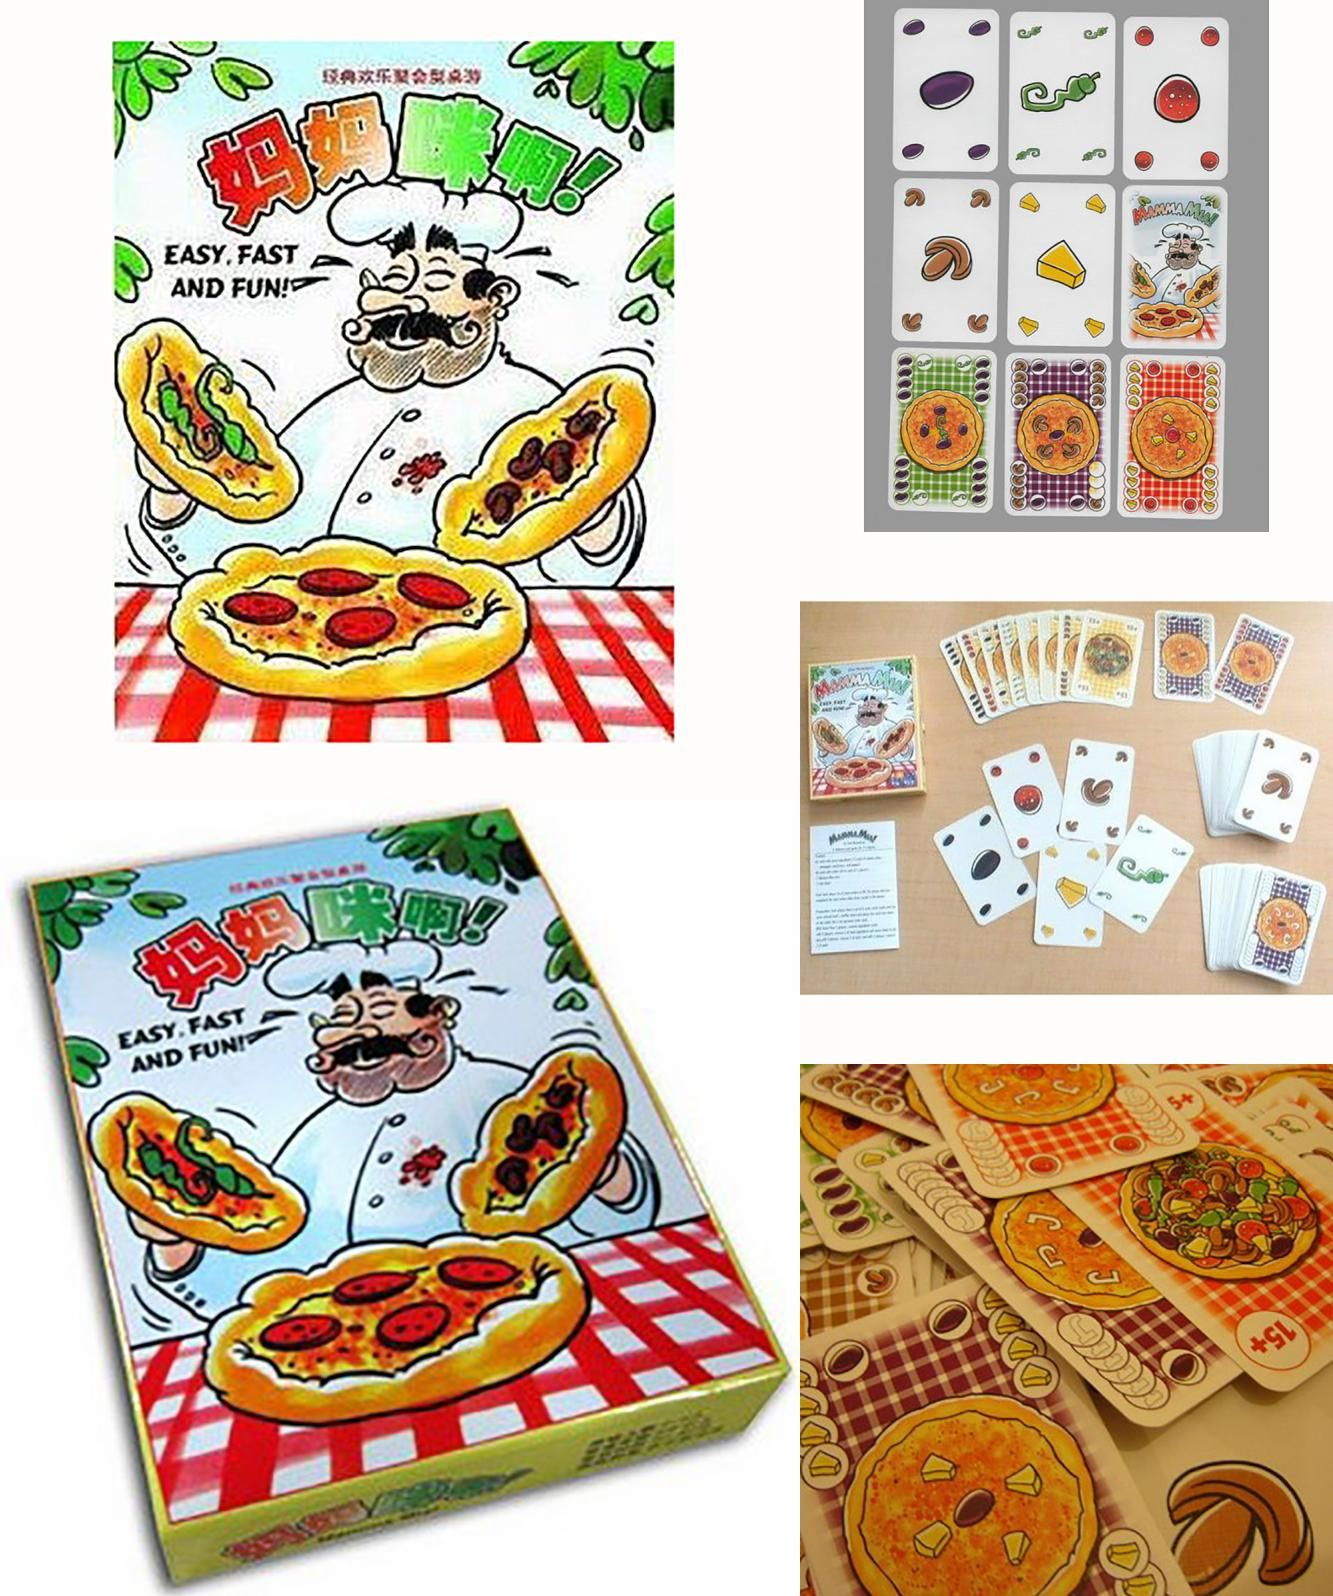 [Visit to Buy] Mamma Mia Board Game , Cards Games 25